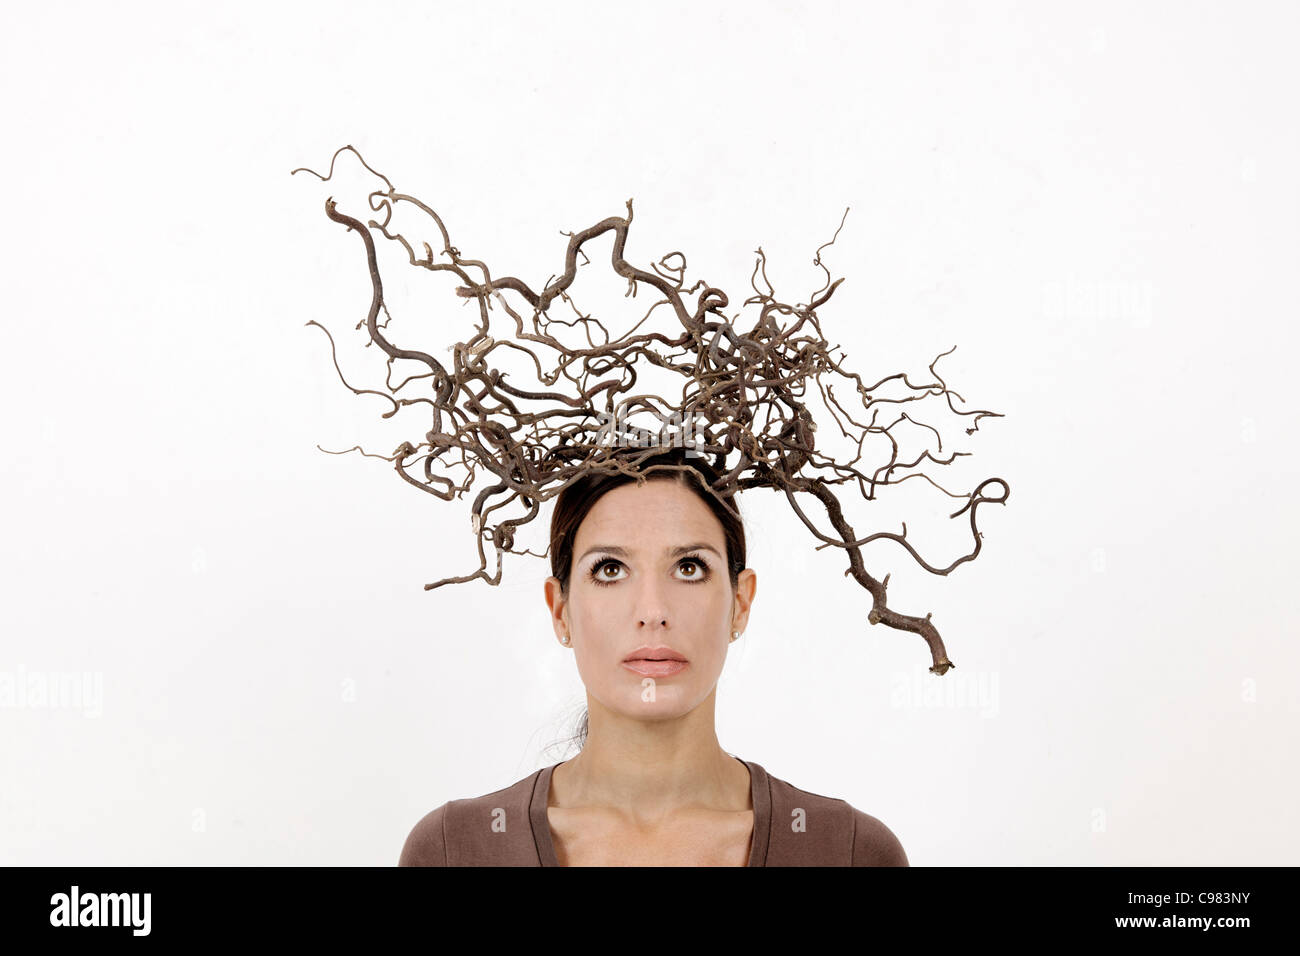 young woman with dried twigs on his head, confused, mind, insecurity, Cut out, Studio Shot - Stock Image